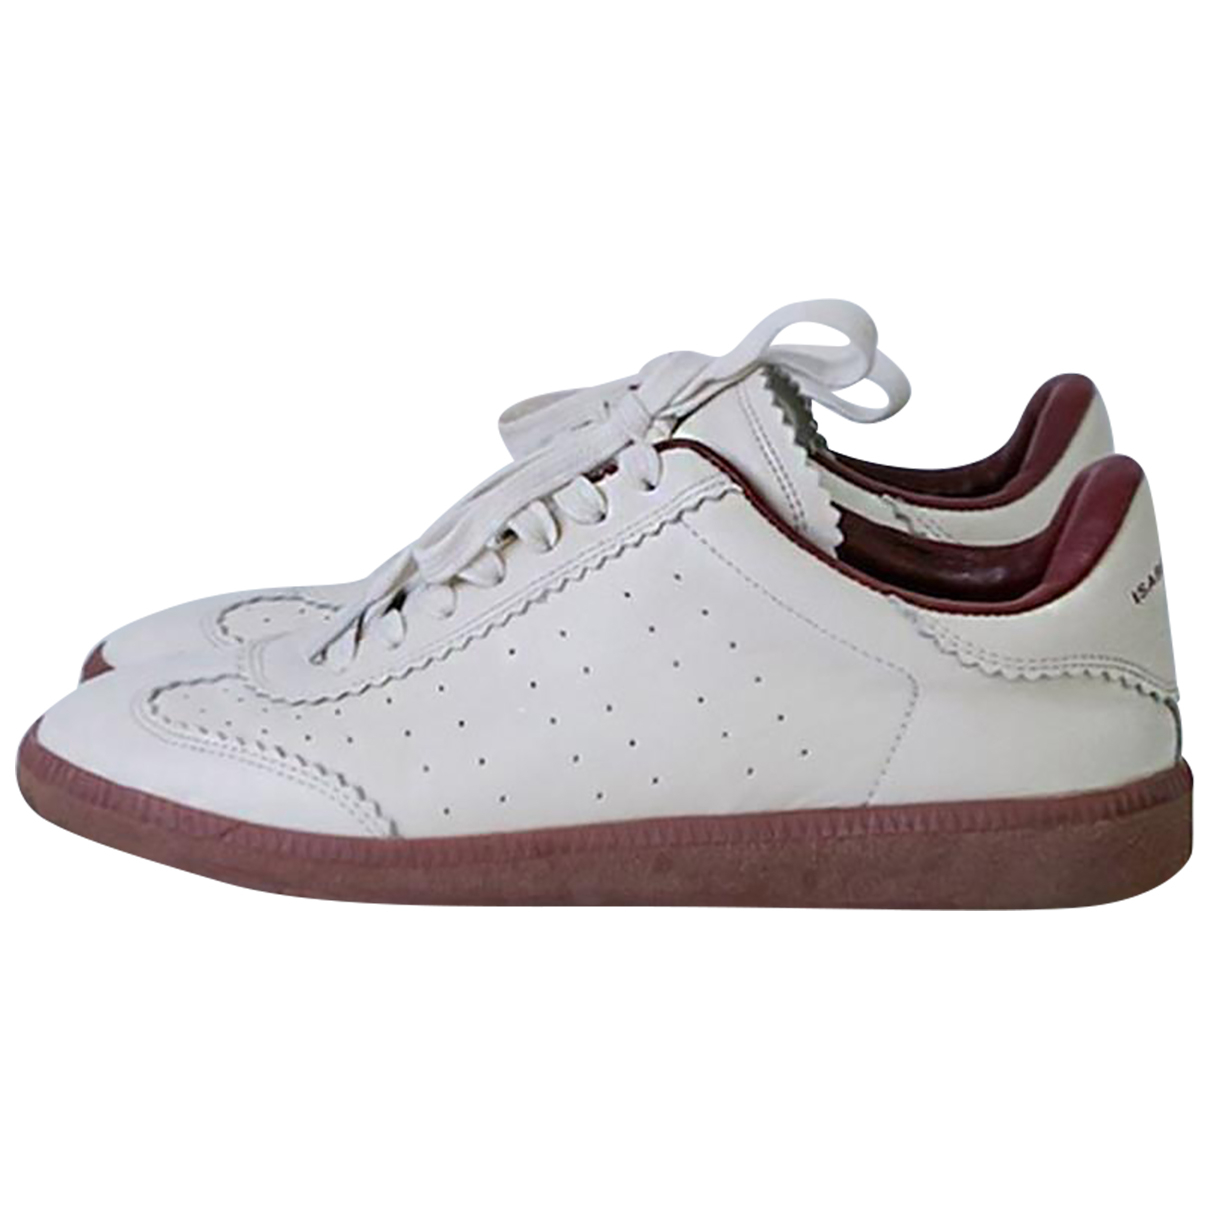 Isabel Marant Bart Camel Leather Trainers for Women 37 EU